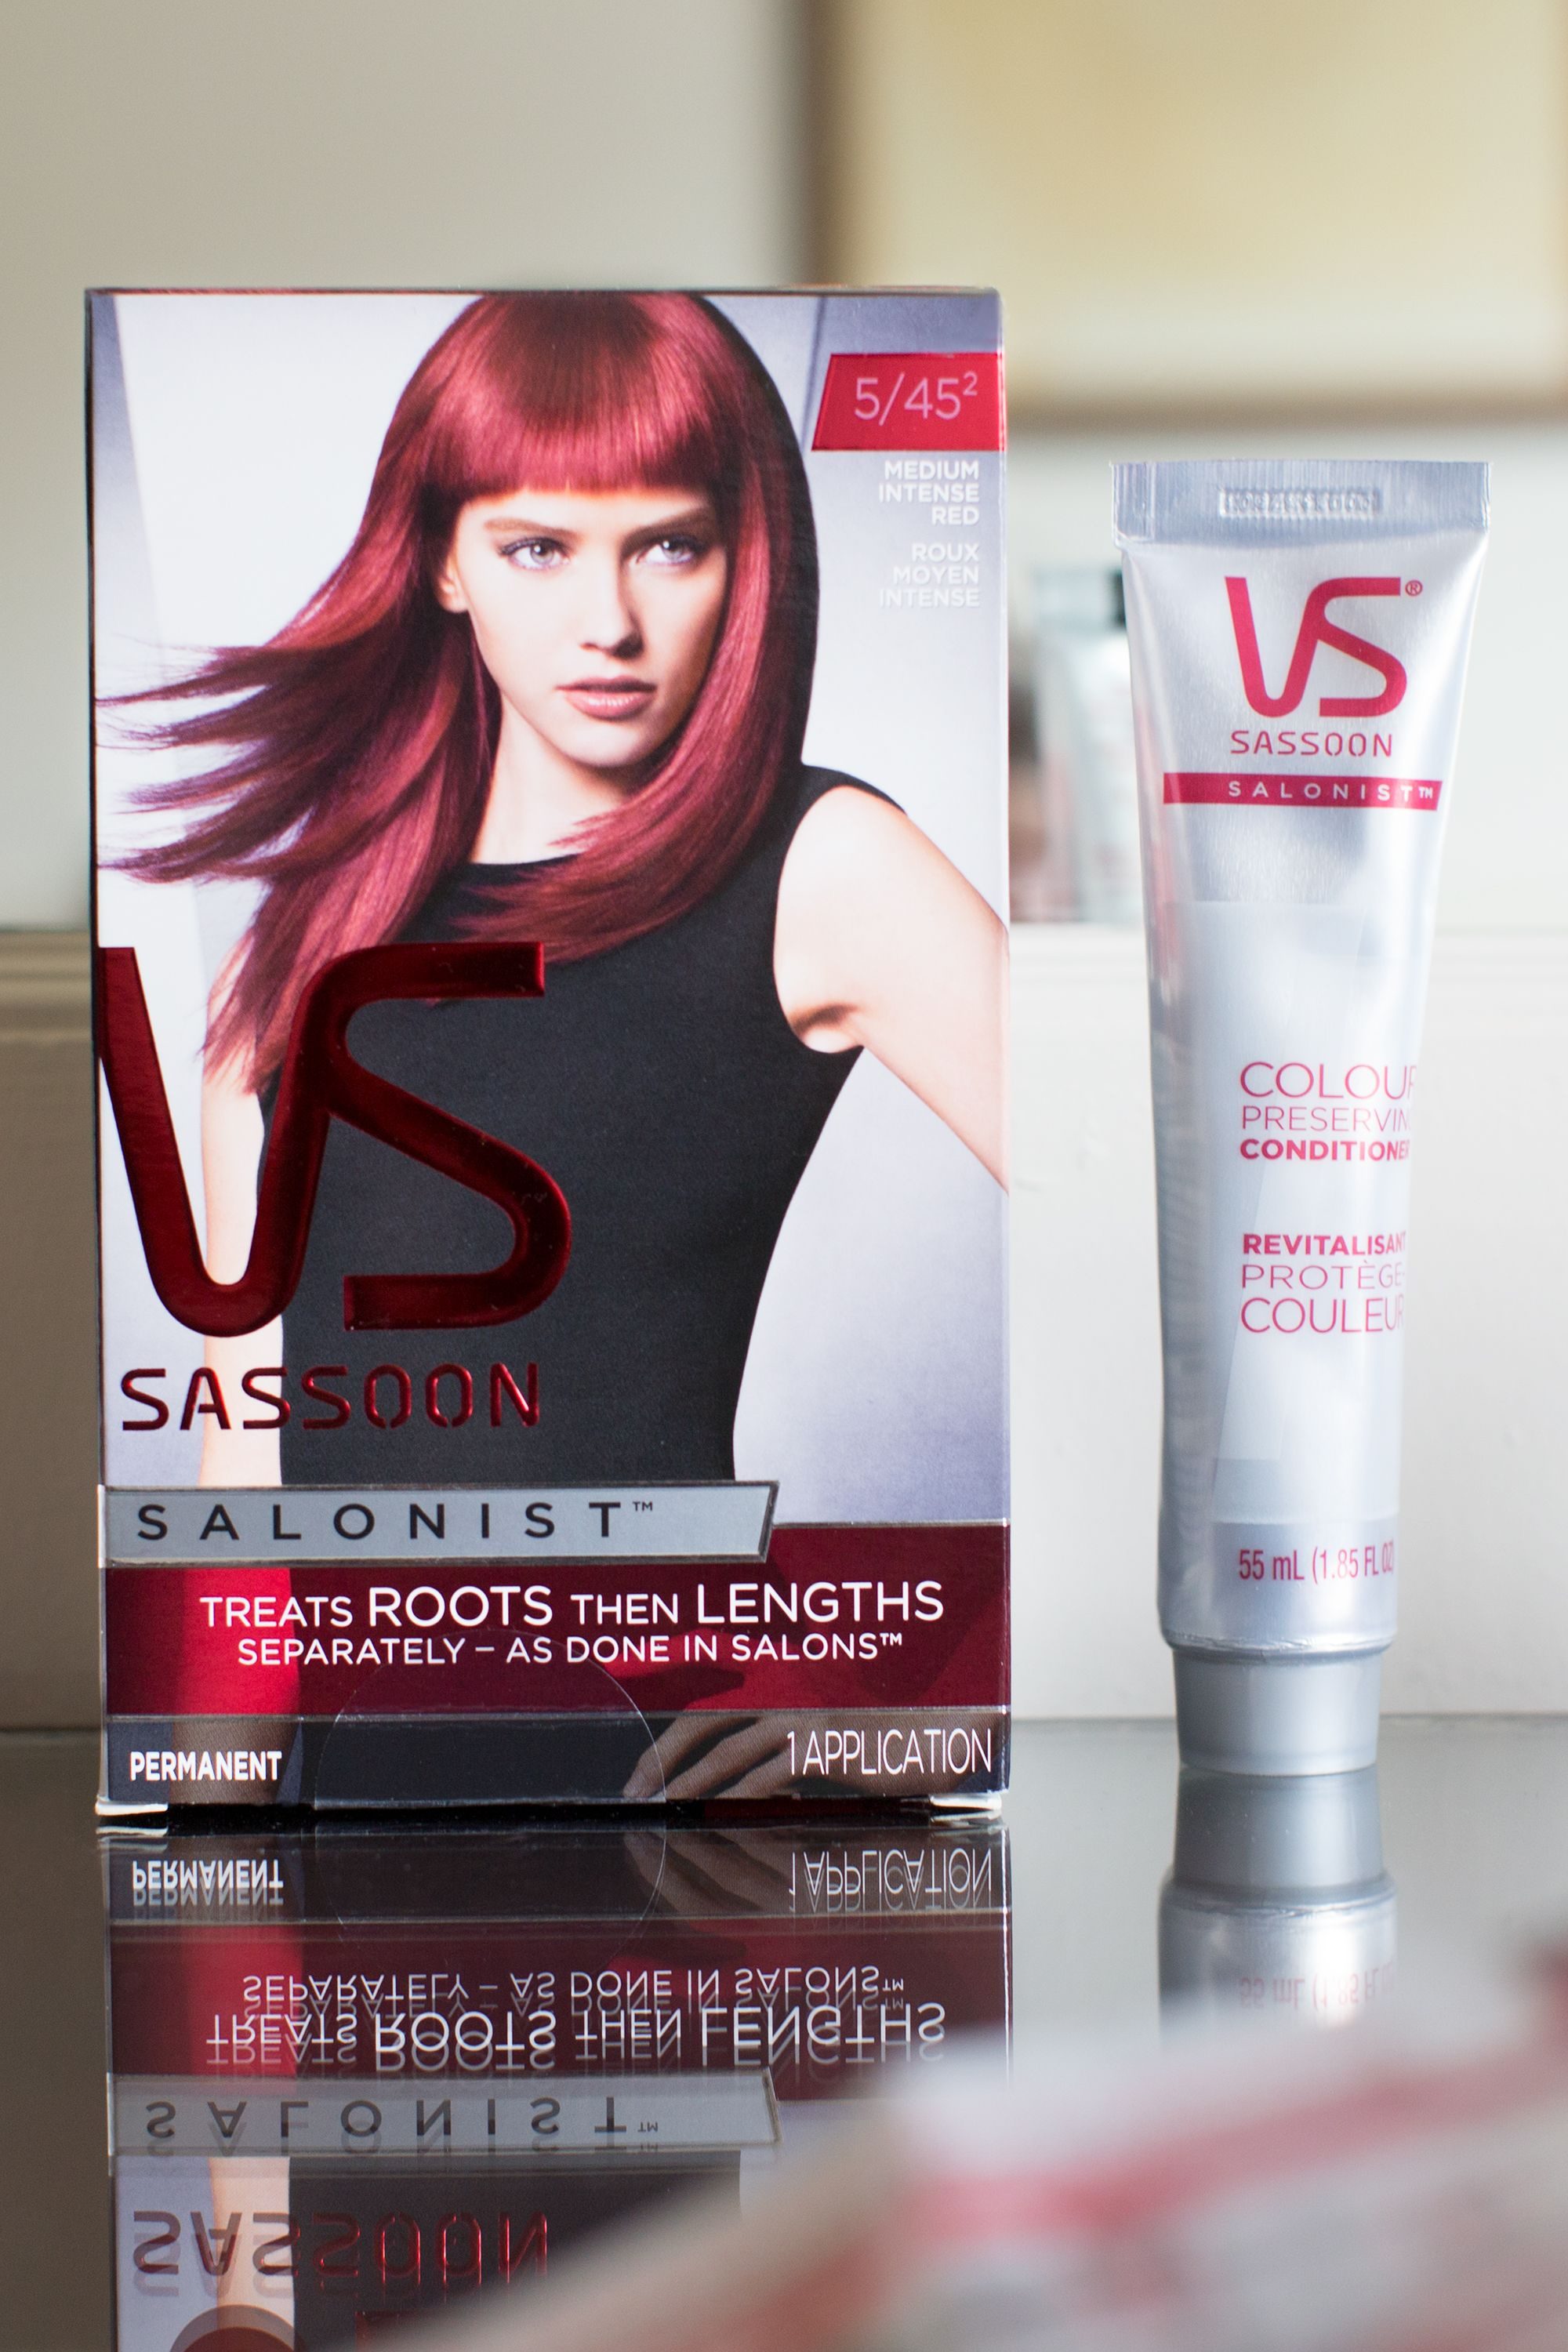 "The <a href=""http://bit.ly/1E7IJr1"" target=""_blank"">Vidal Sassoon Salonist™</a> kit comes complete with the following: one pair of protectant gloves; one tube of rich color cream; one bottle of color-activating lotion; one sachet of VS Serum™; one tube of color-preserving conditioner; one expert brush; and one expert bowl."